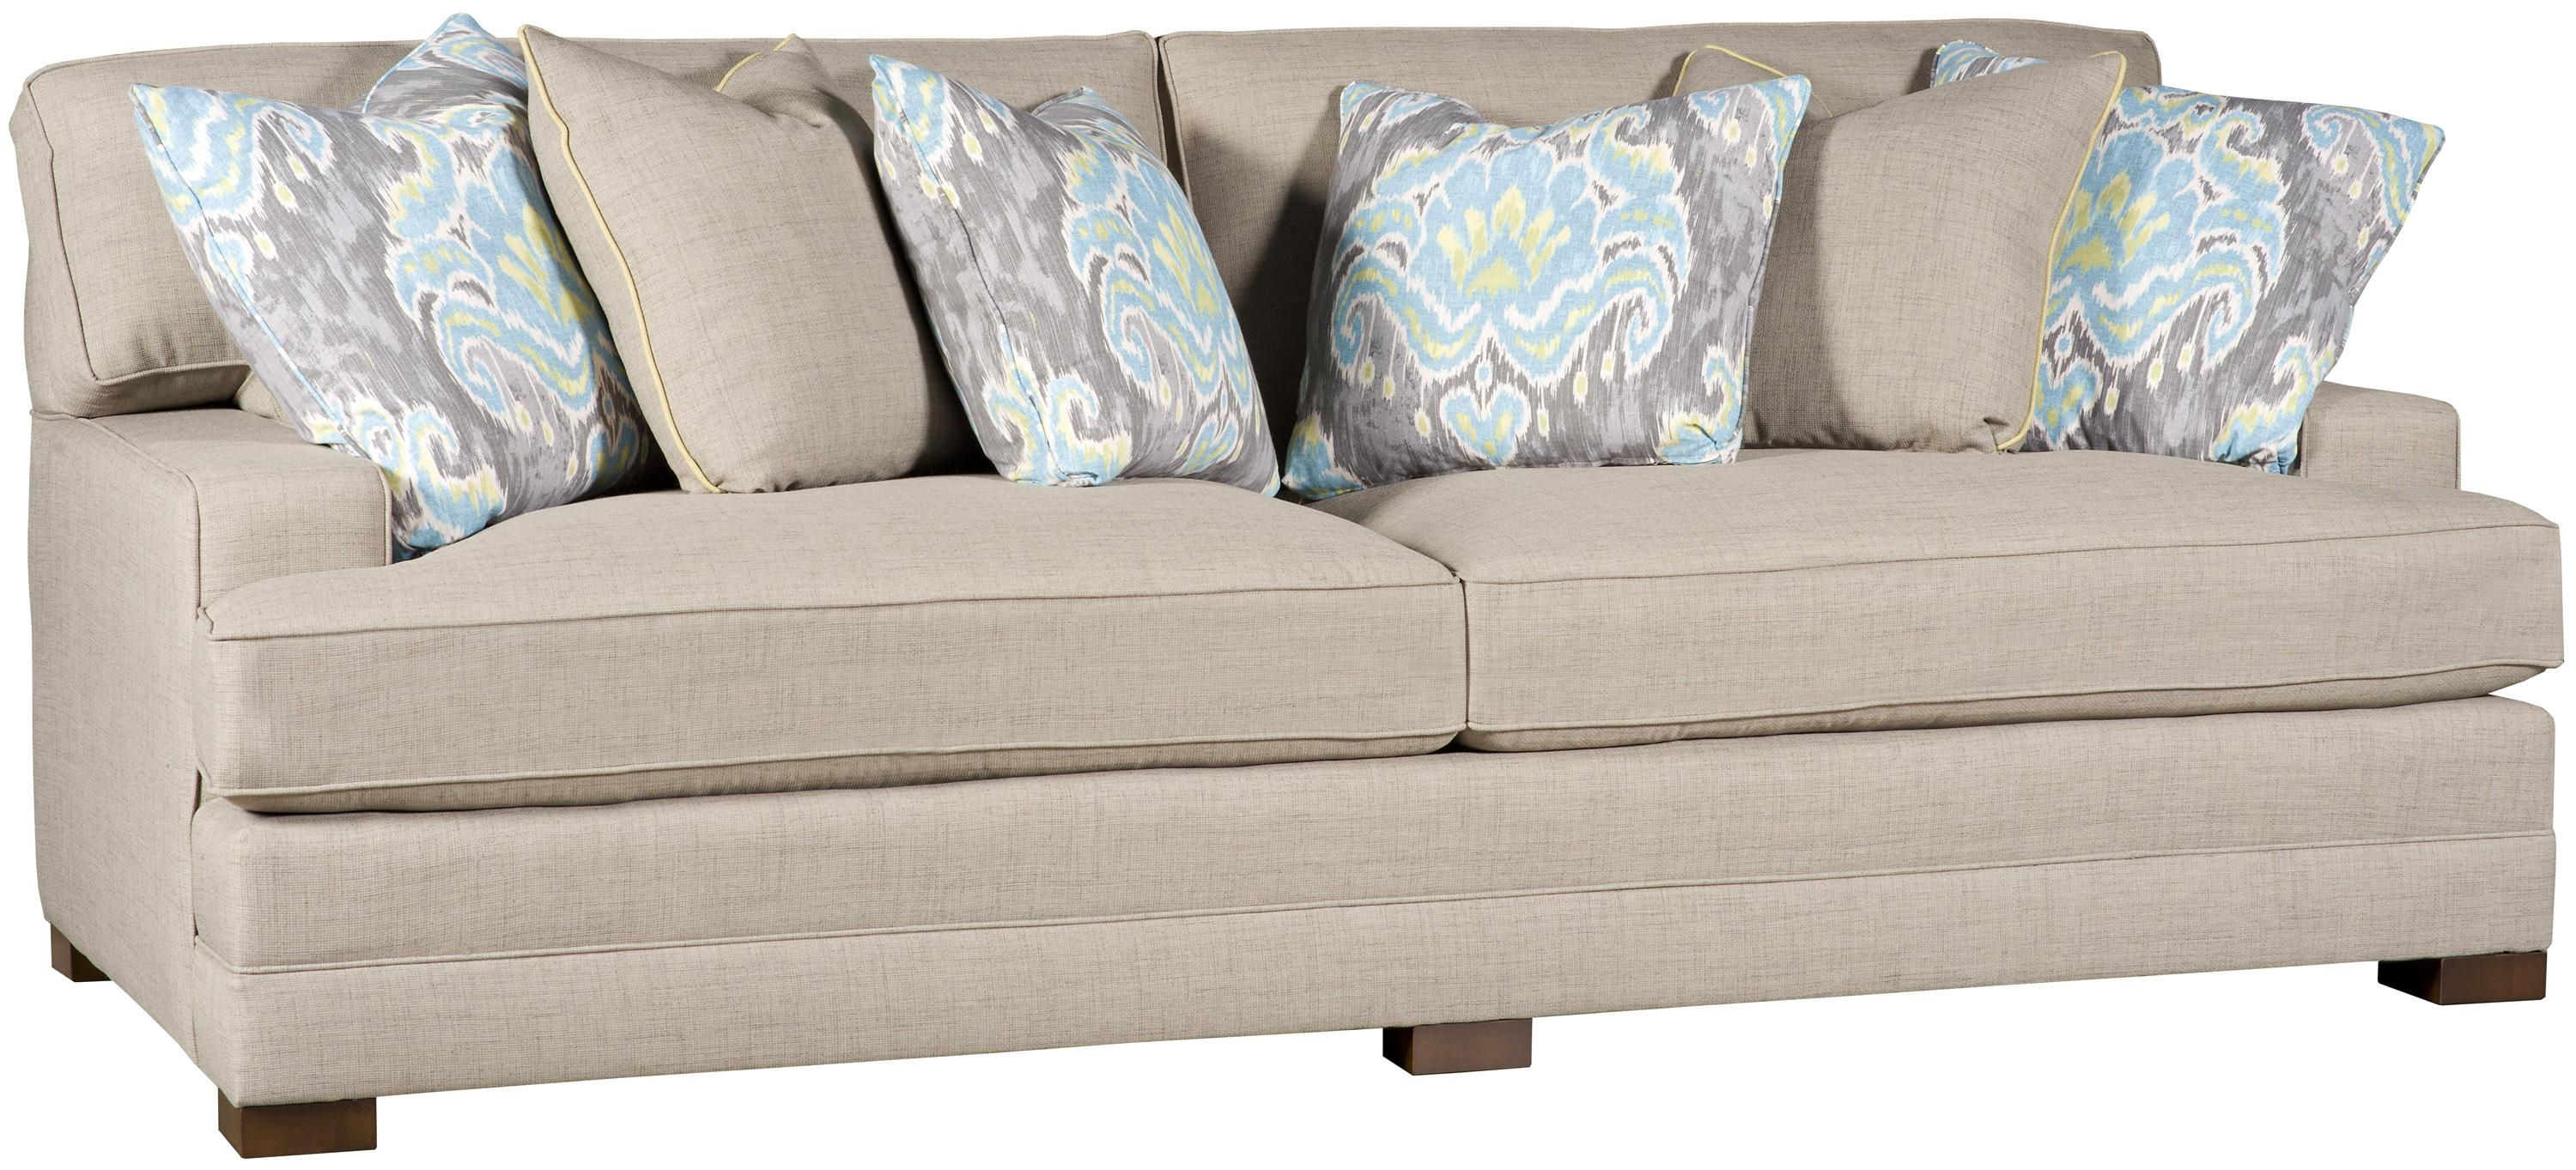 Casbah Casbah Fabric Sofa by King Hickory at Saugerties Furniture Mart